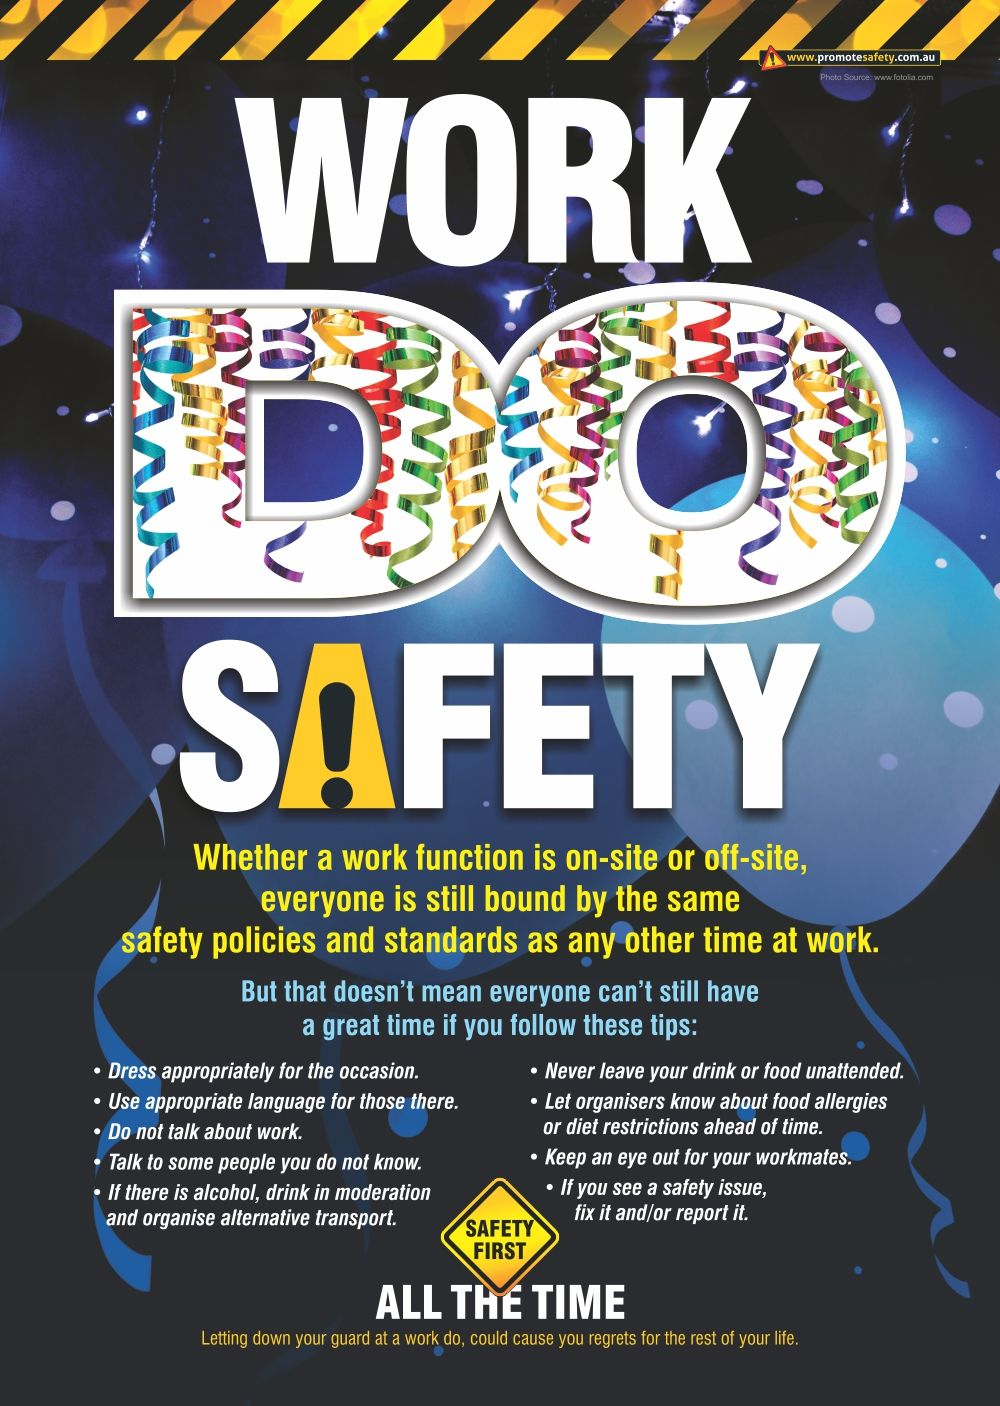 This Safety Poster From Promote Safety Is A Reminder To Workers